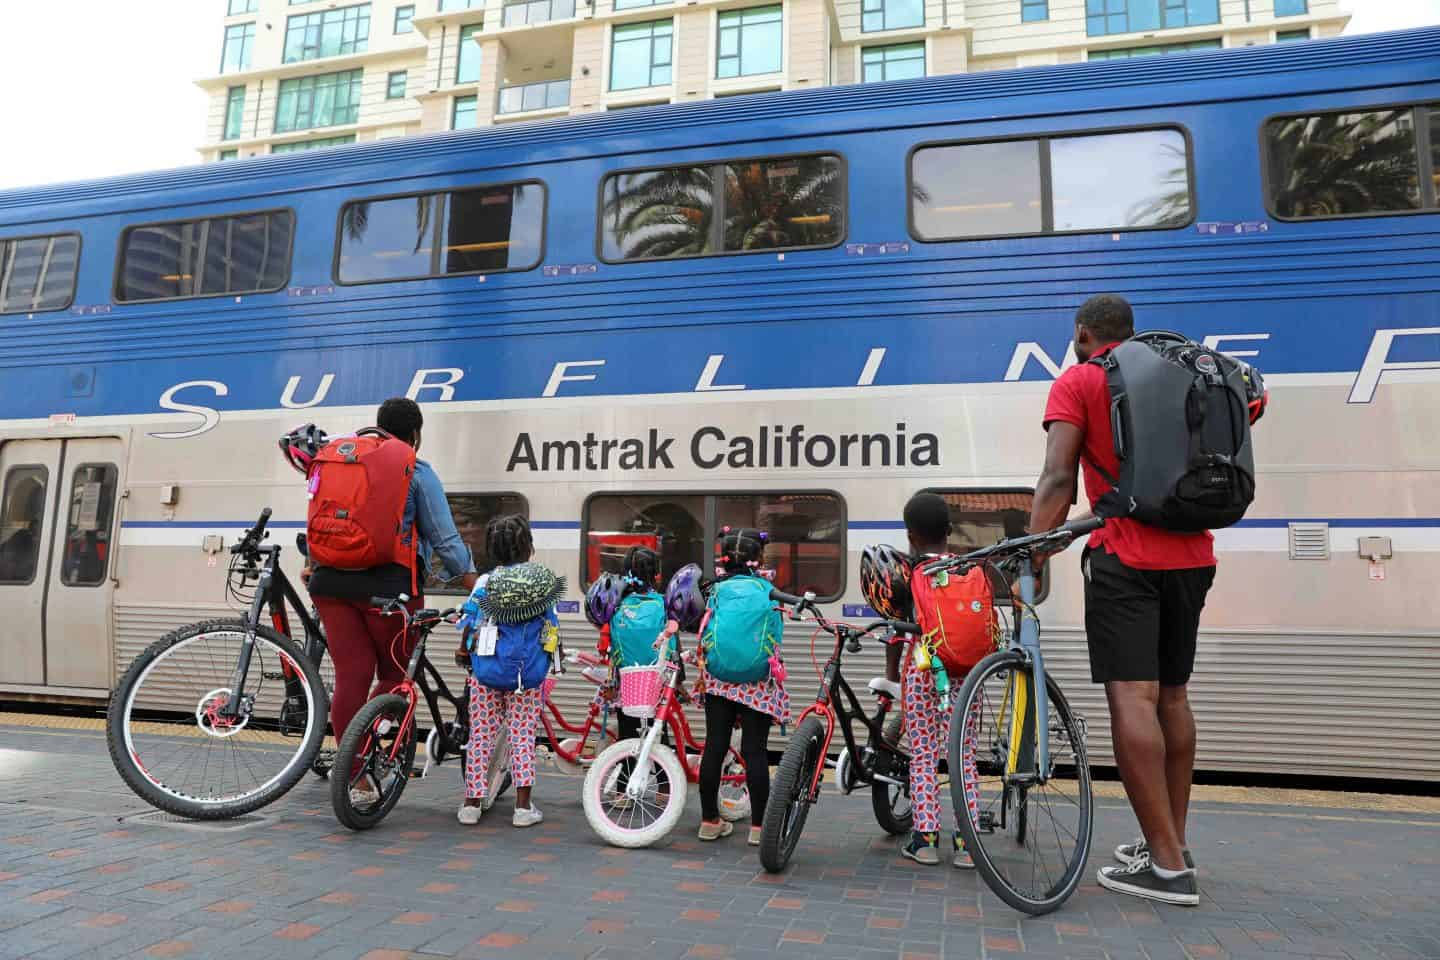 Los Angeles To San Diego On The Amtrak Train With Kids